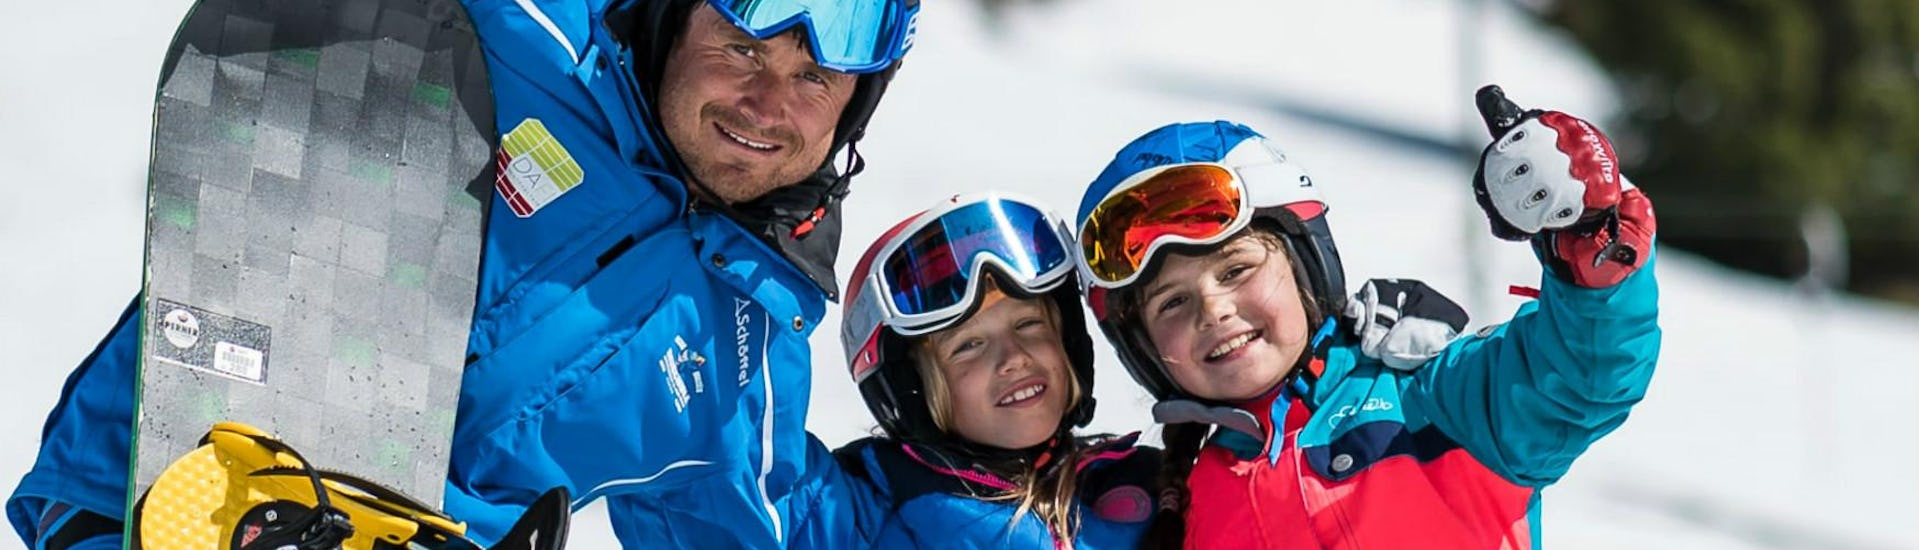 Snowboarding Lessons for Kids (8-15 years) - All Levels